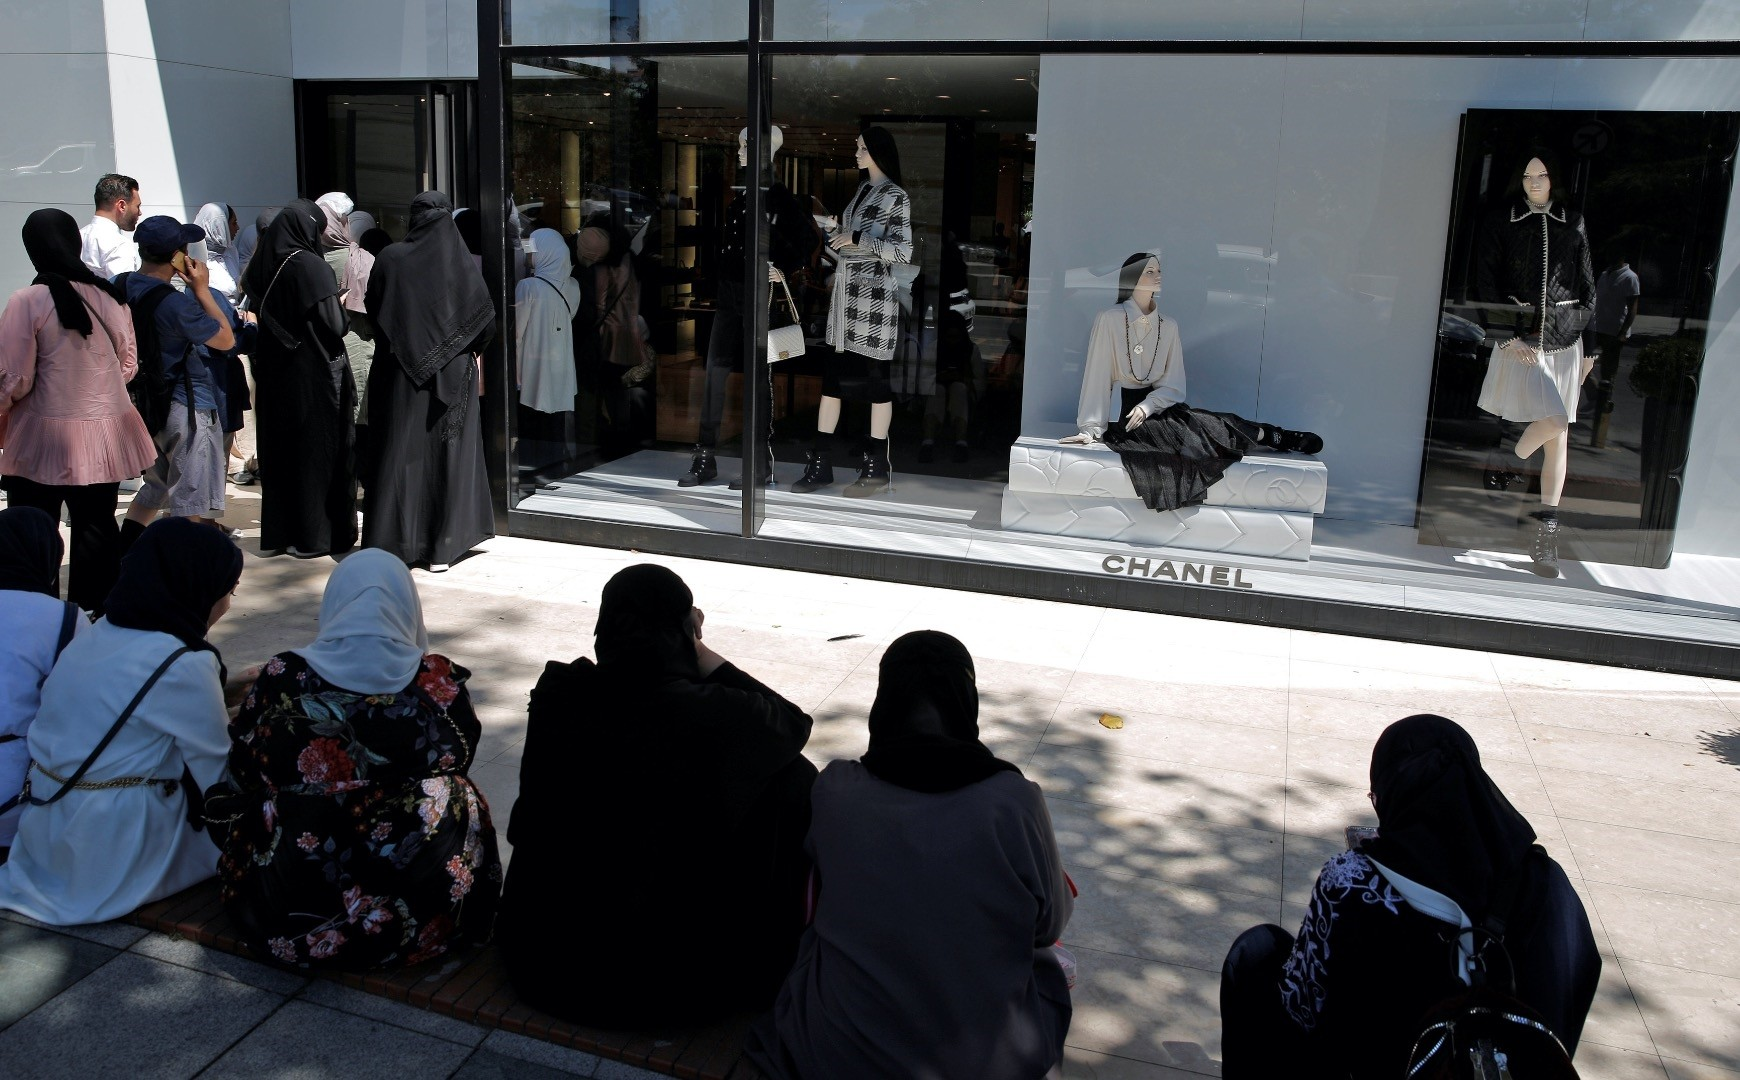 Tourists wait to enter a Chanel store in Istanbul.